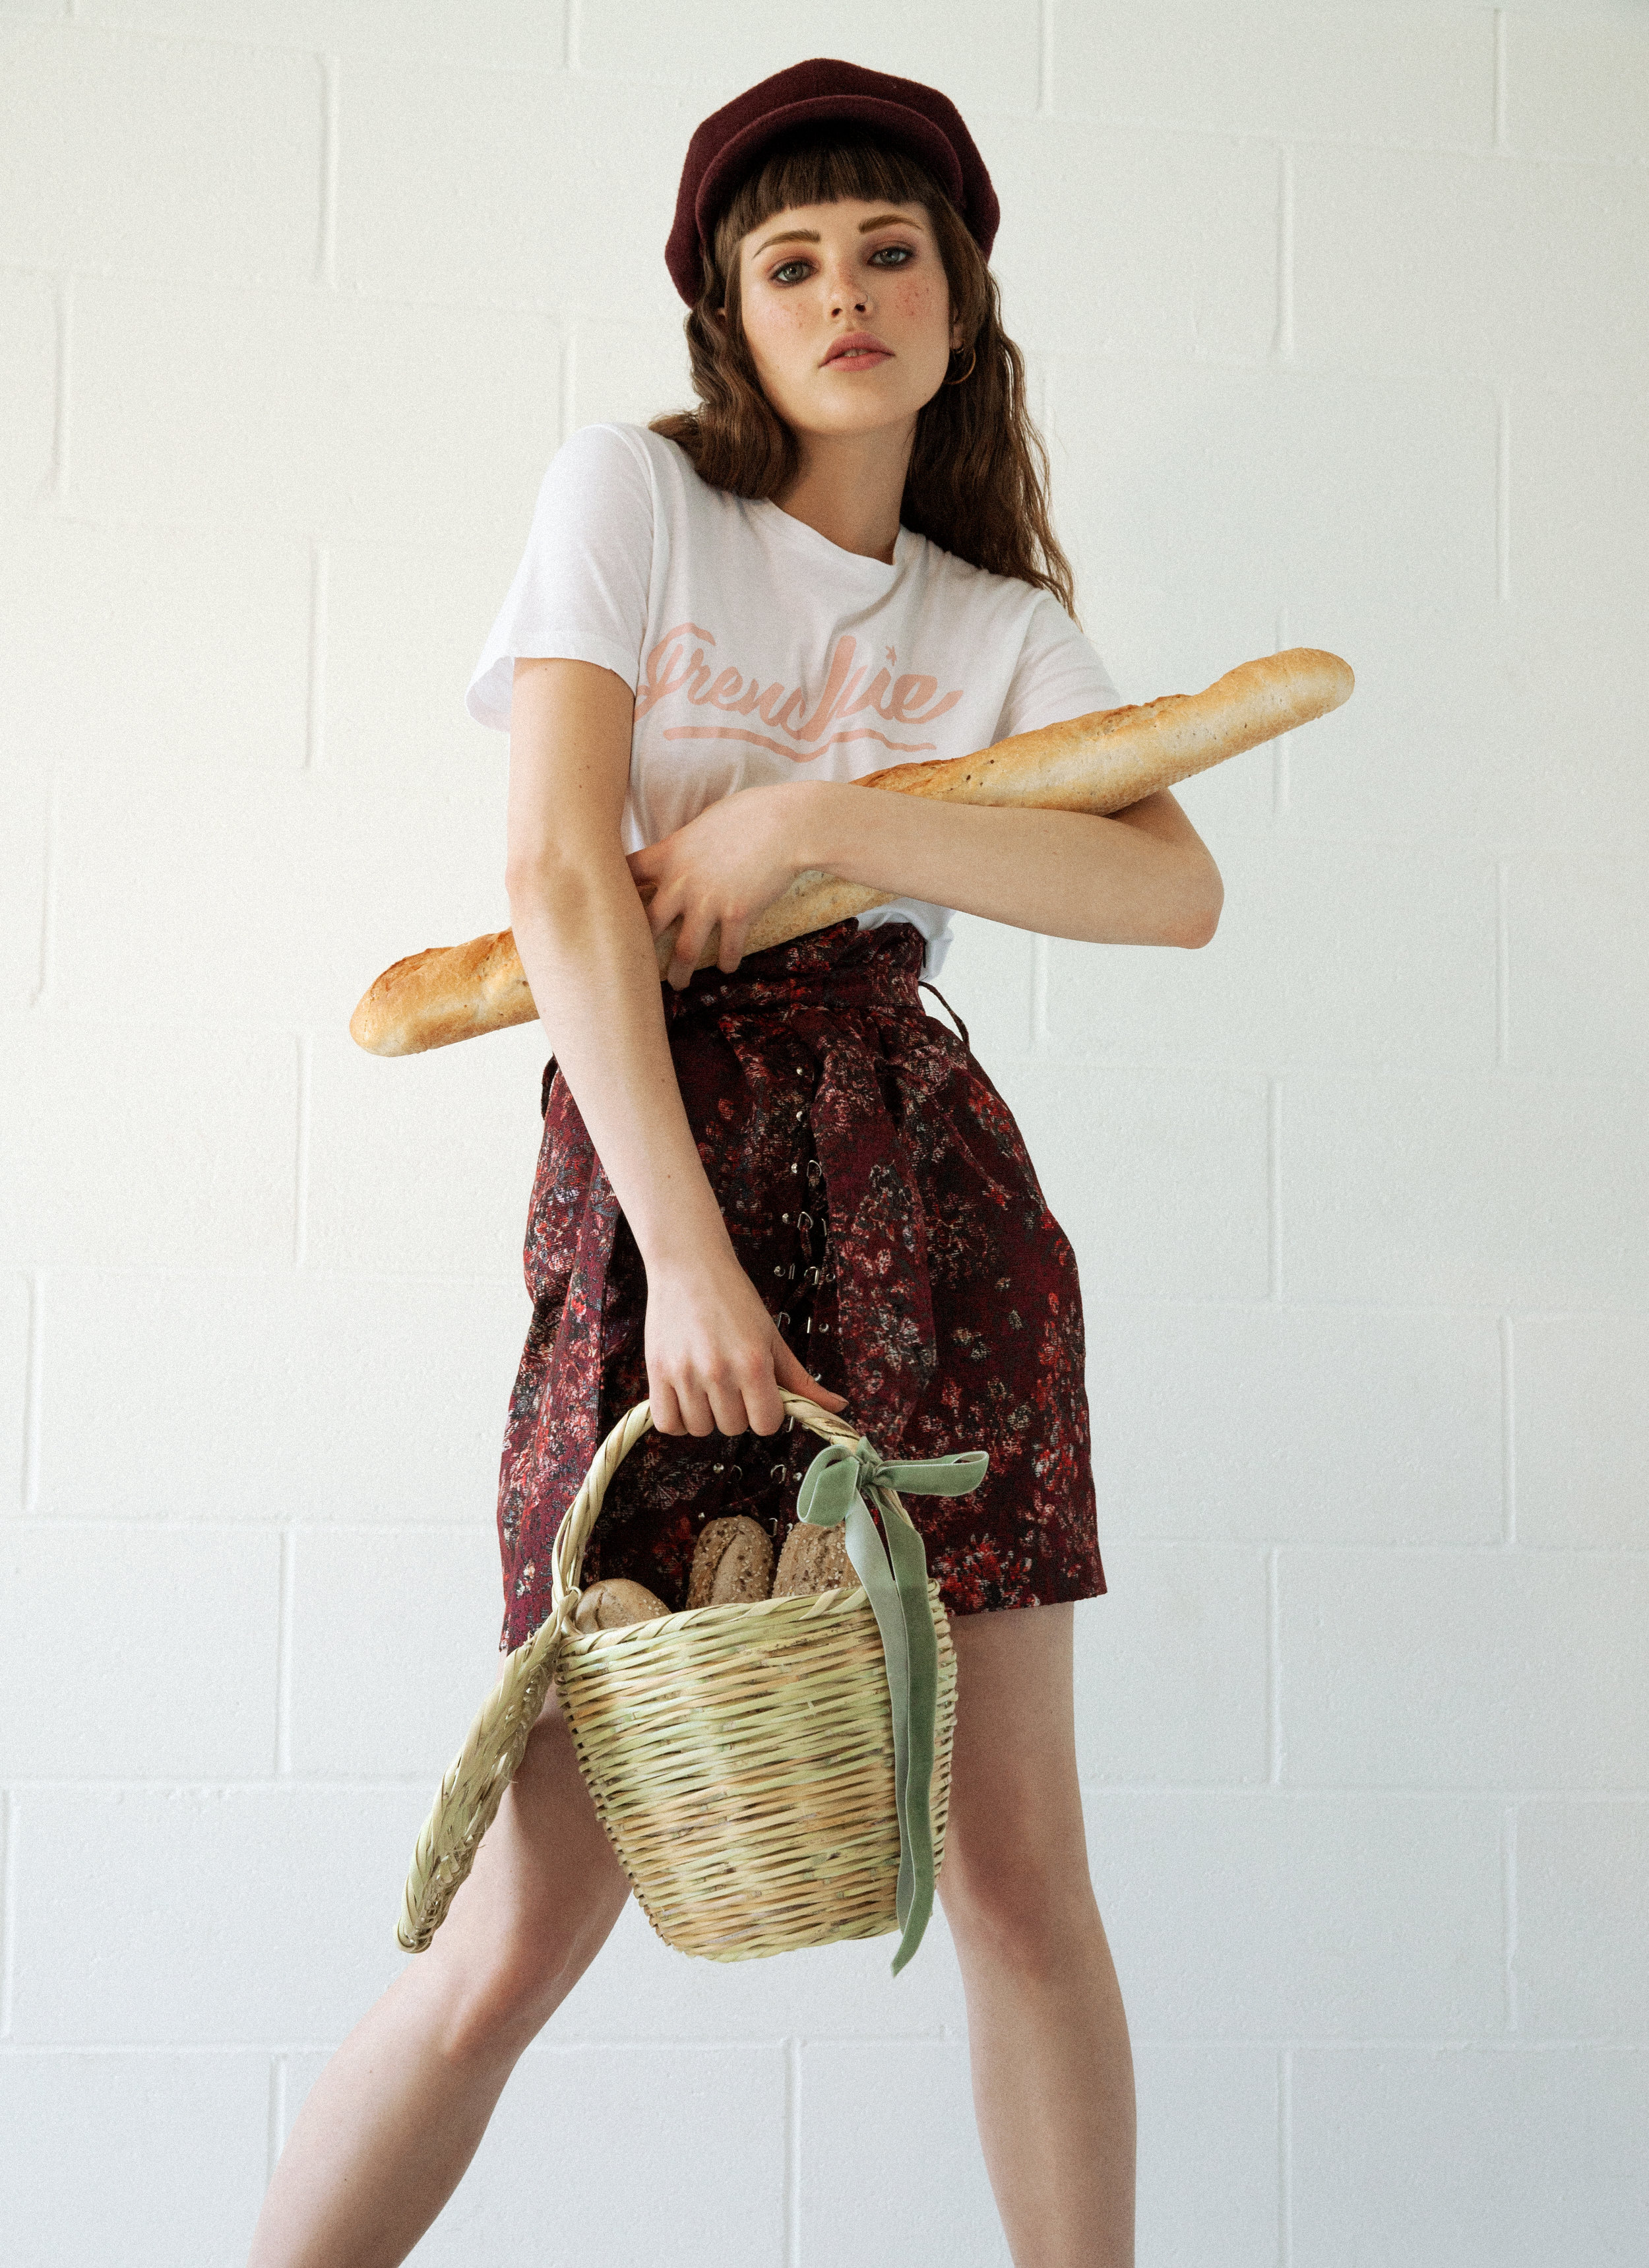 Skirt: Iro at Fenwick Top:Etre Cecile Hat: Cenci Vintage Shoes: Ouigal Basket: Blooming Dreamer Earrings: The Boyscouts